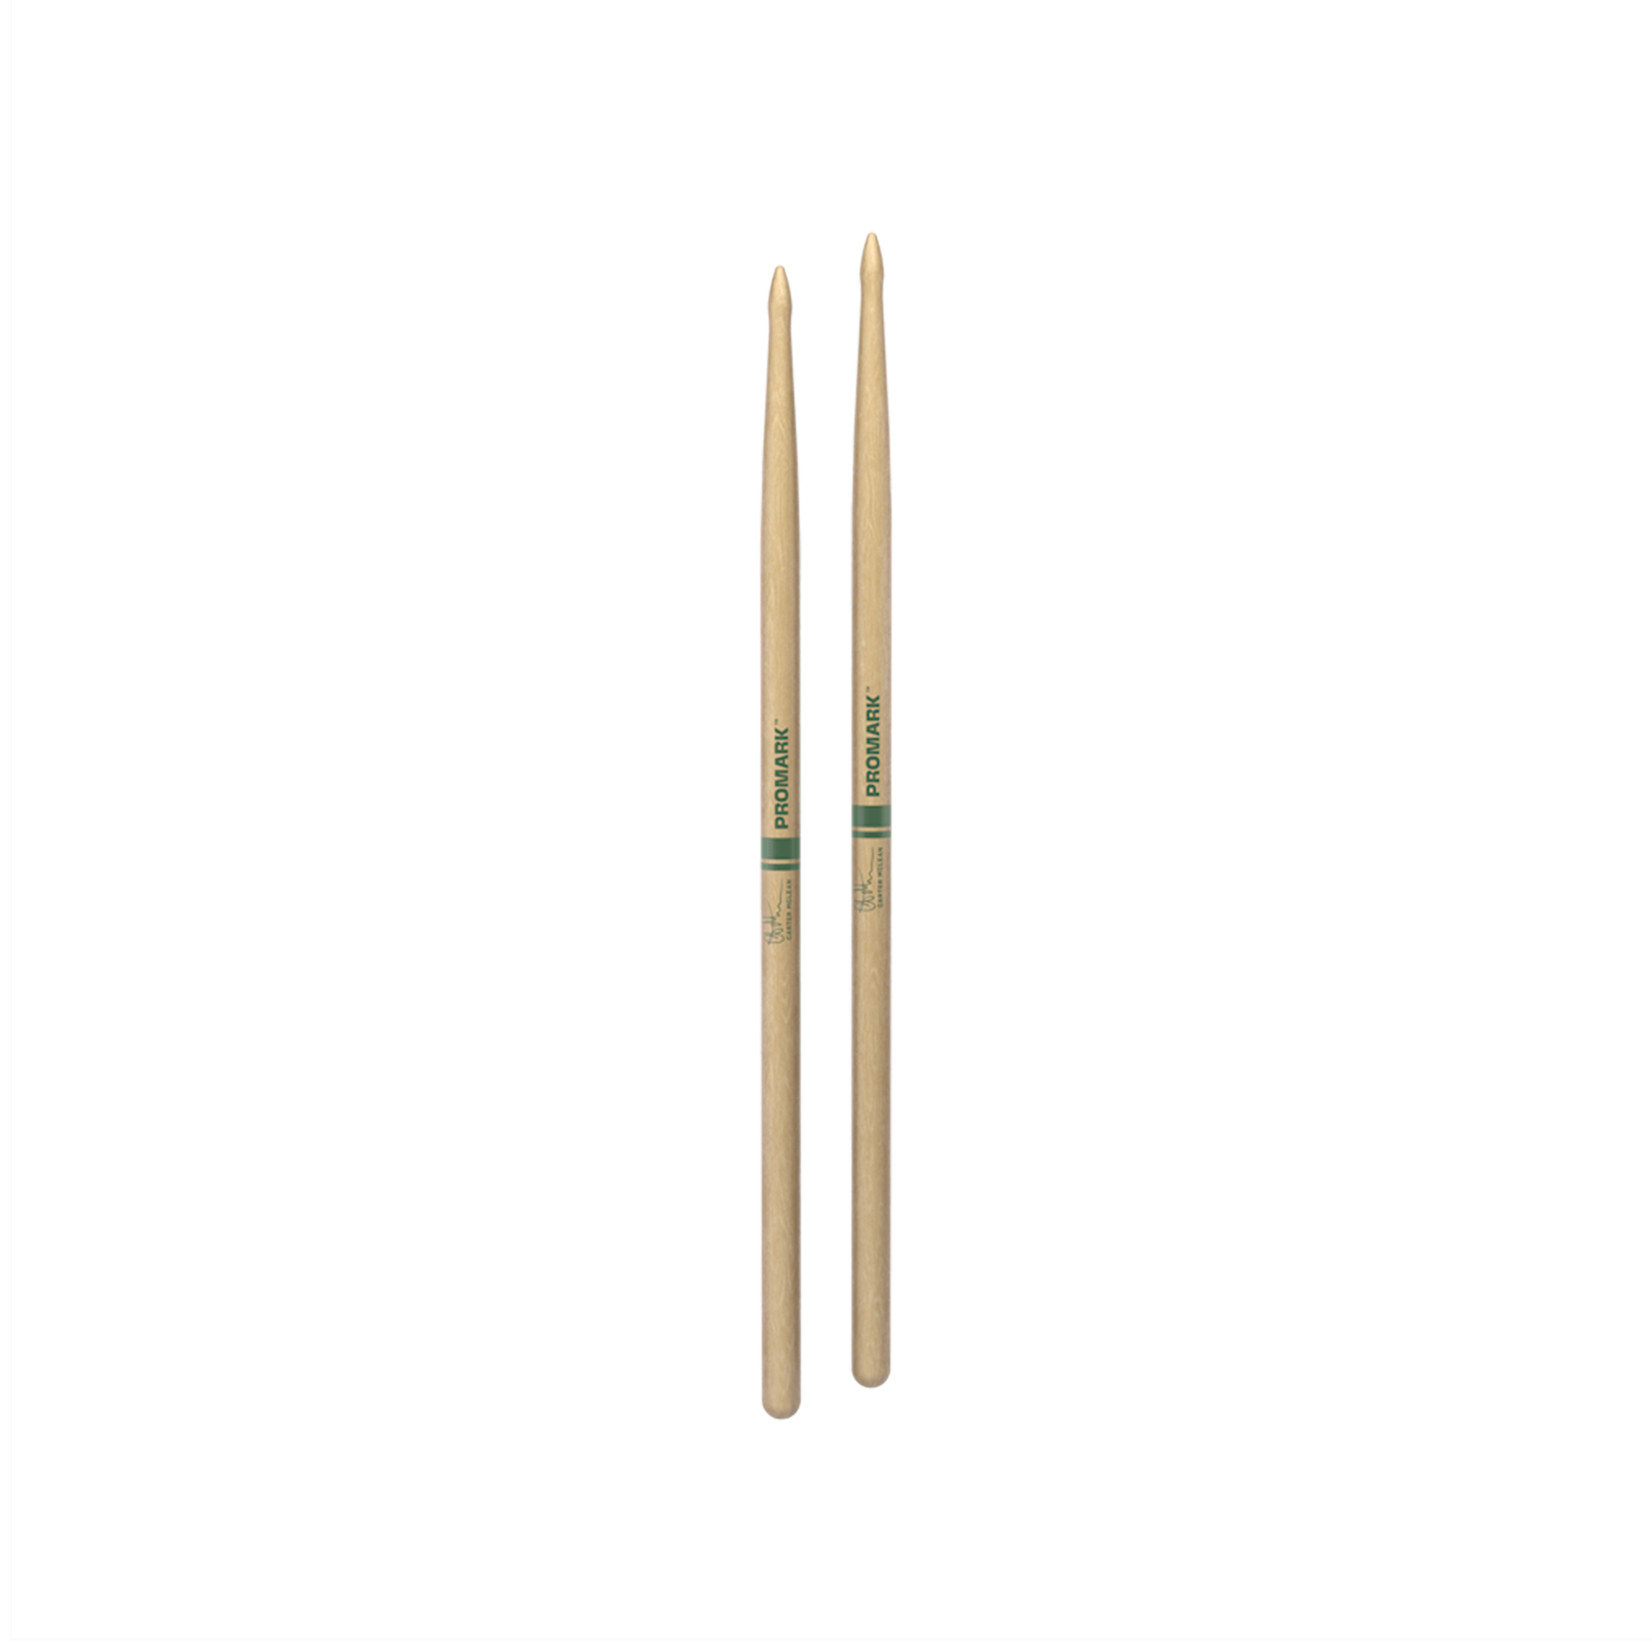 Promark ProMark Carter McClean Hickory Wood Tip Drumstick